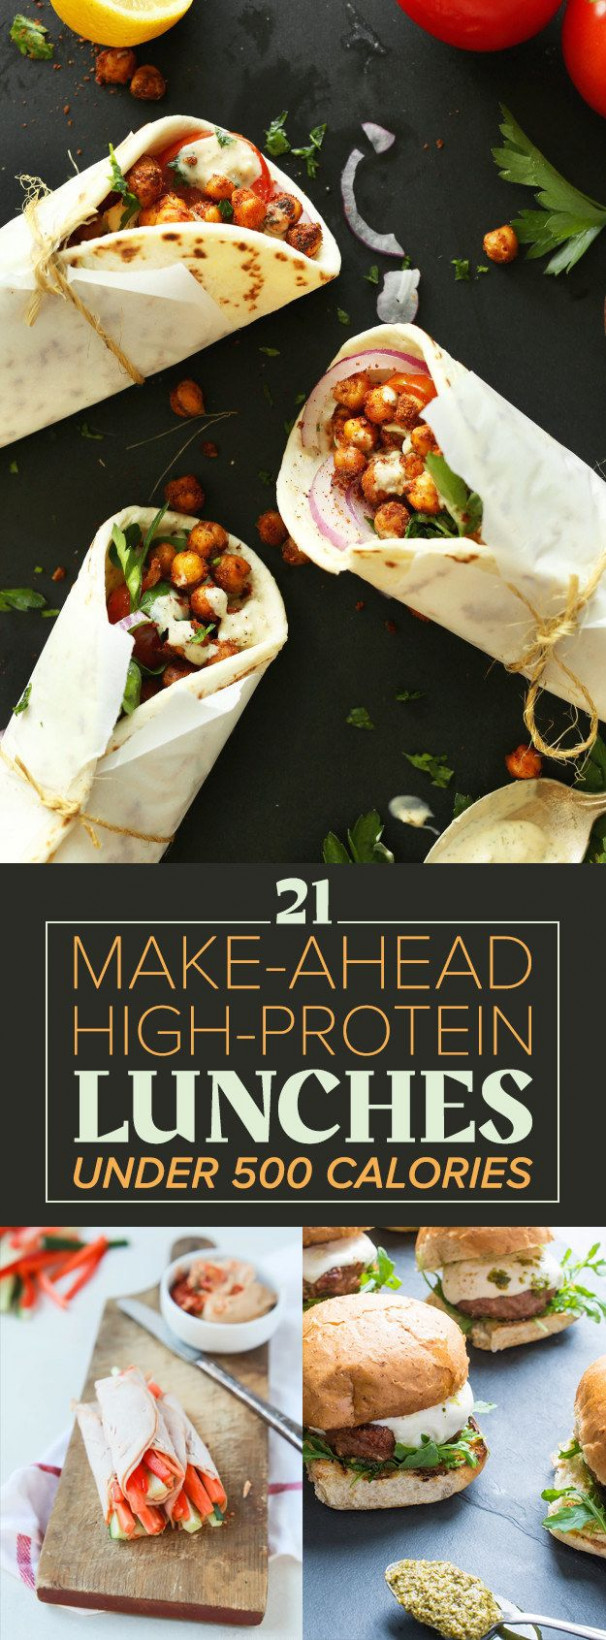 21 High-Protein Lunches Under 500 Calories | Eating Well ..